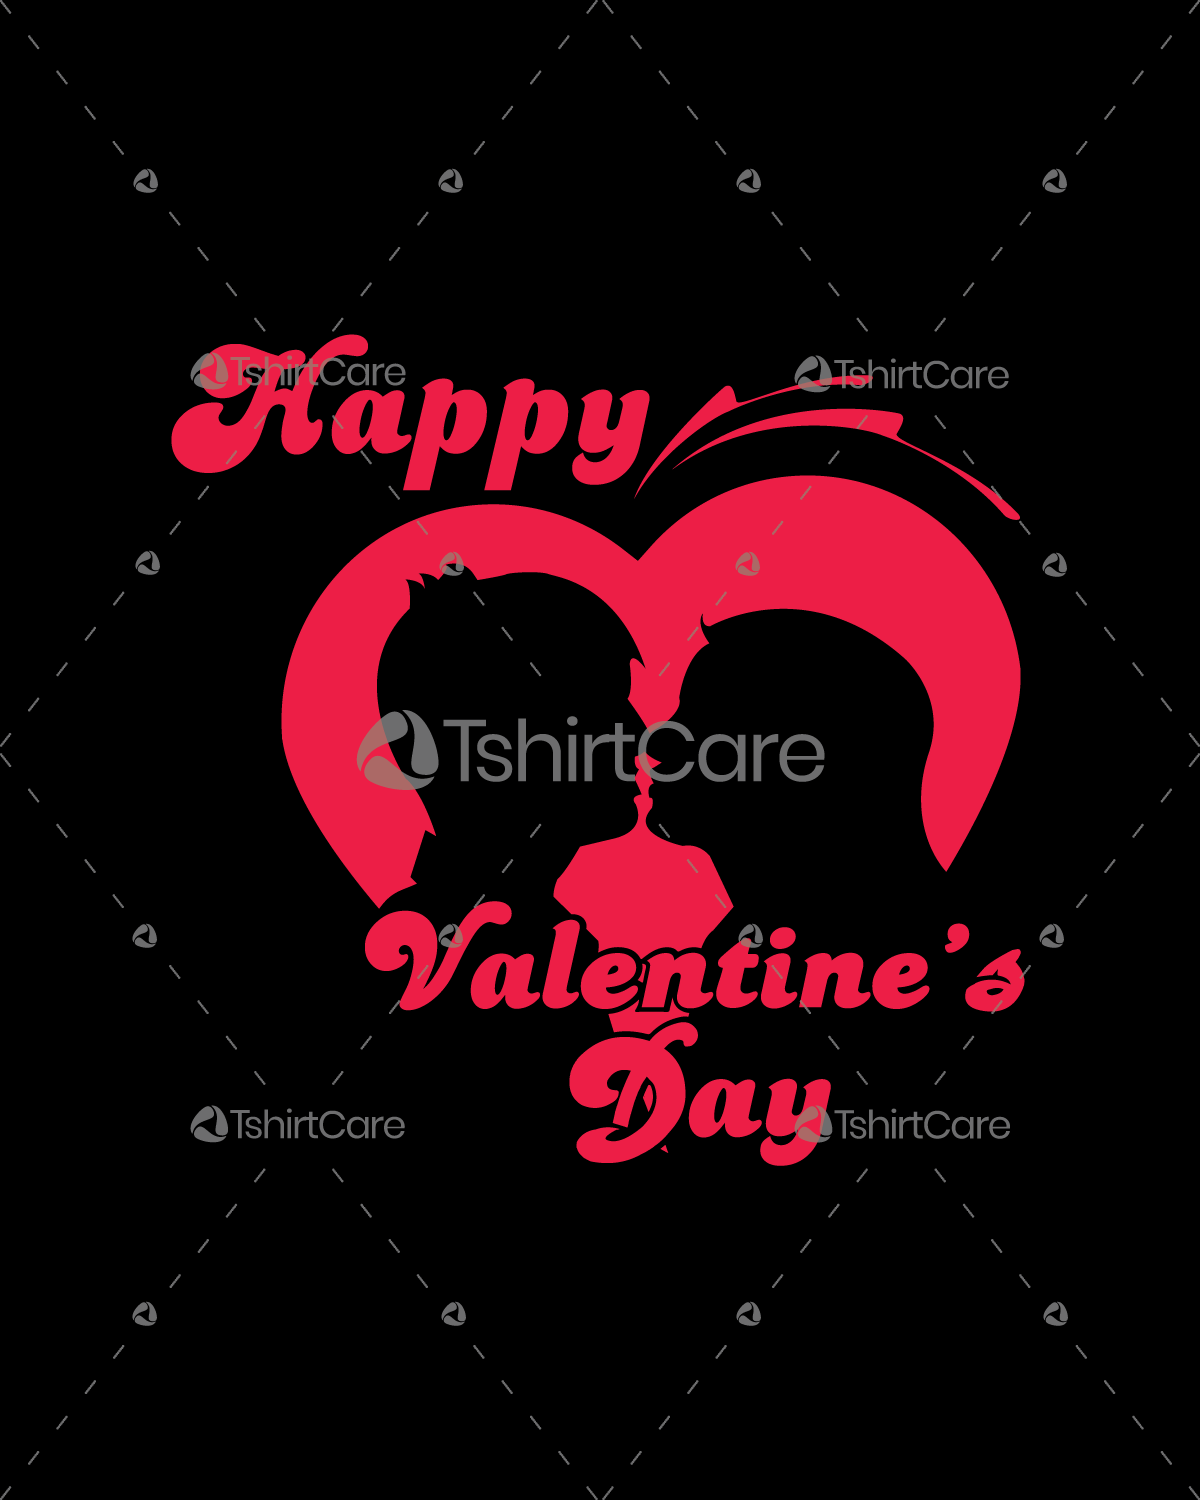 Happy Valentine's Day T-Shirt Design for Couple